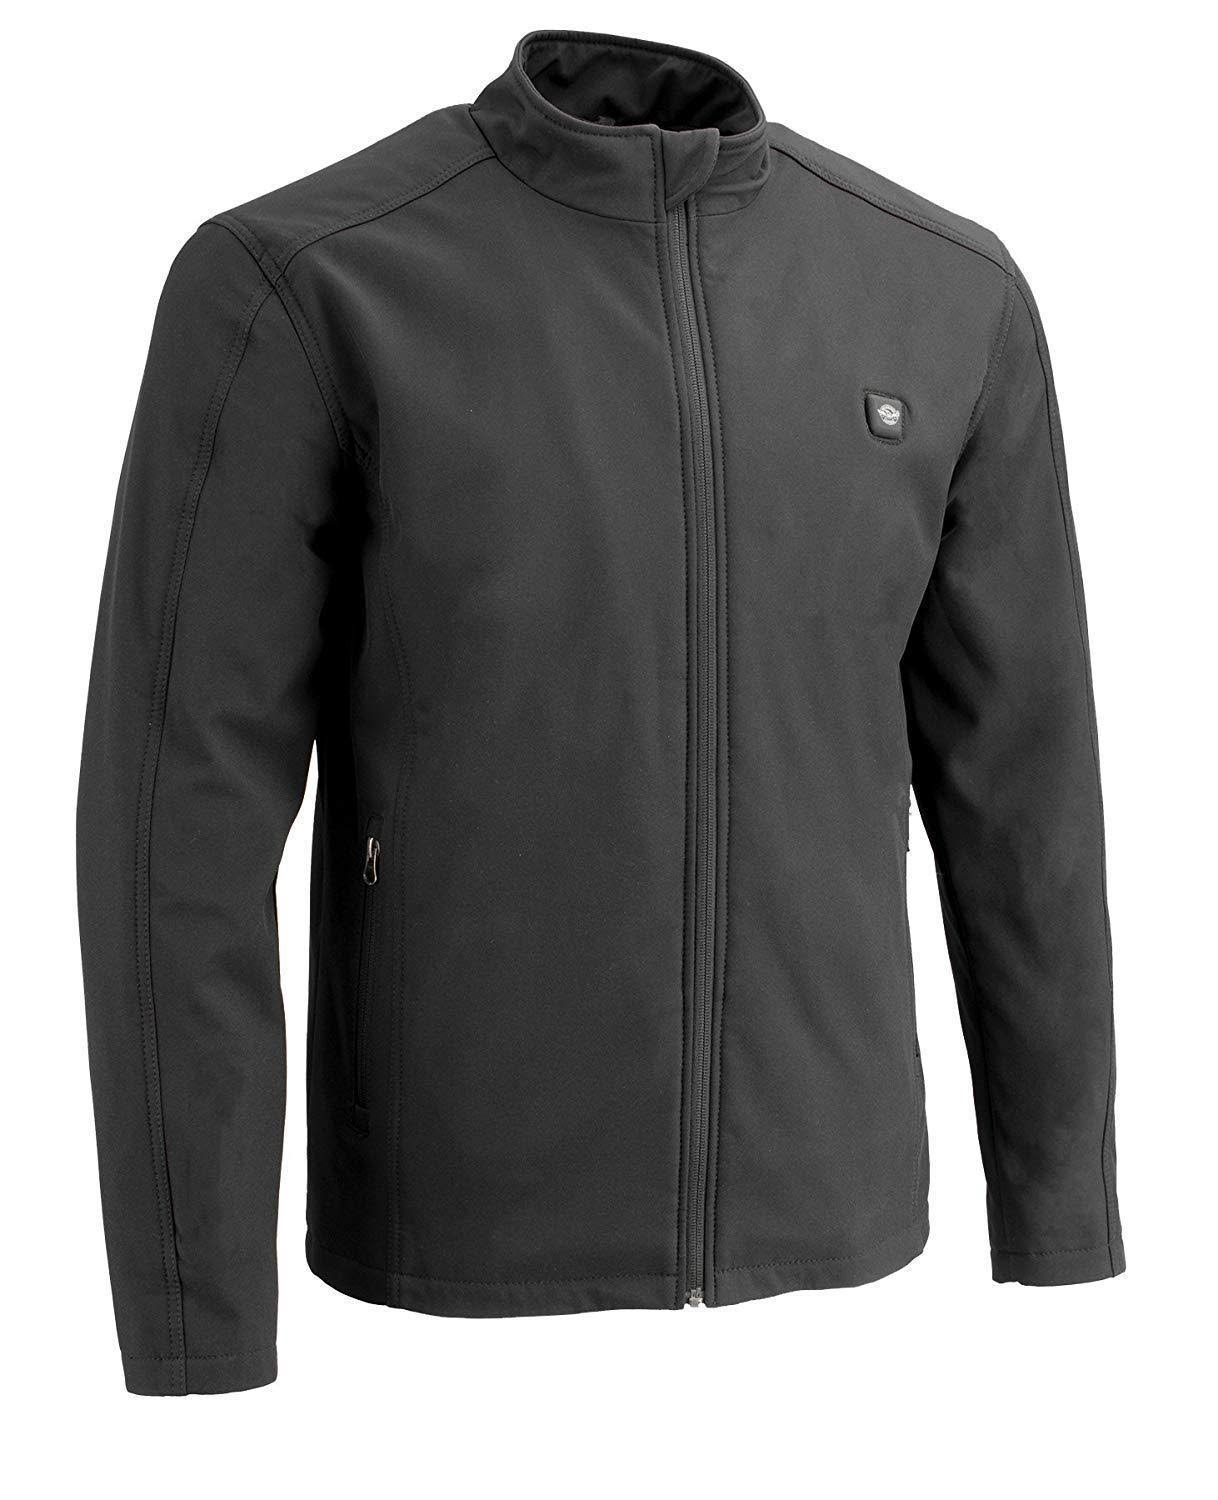 Milwaukee Performance Men's Zipper Front Heated Soft Shell Jacket (Black, 4X)